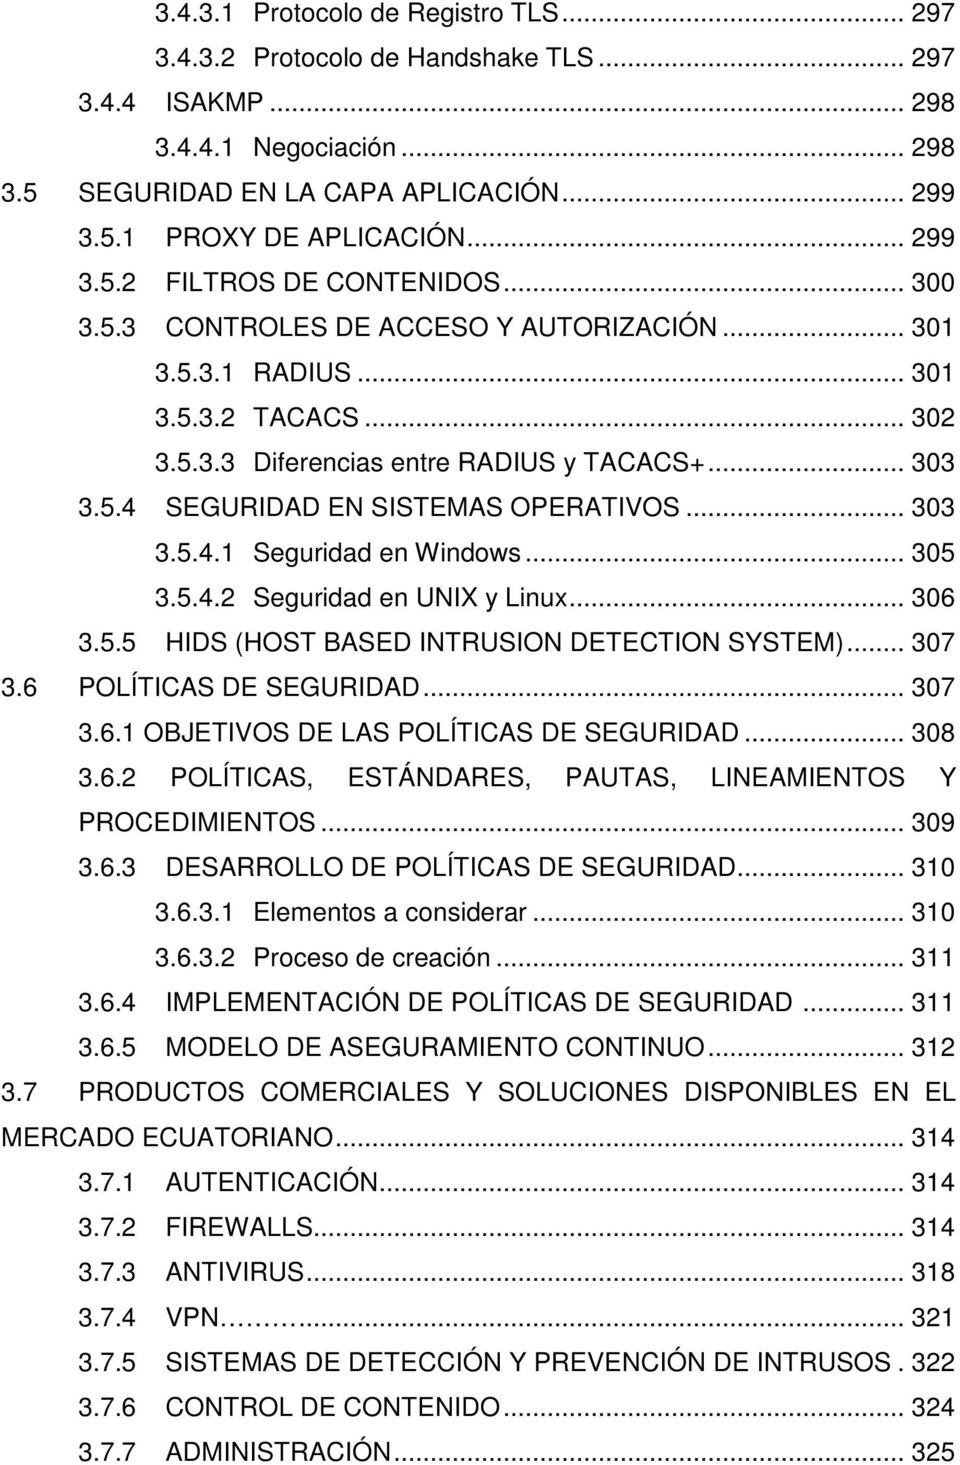 .. 303 3.5.4.1 Seguridad en Windows... 305 3.5.4.2 Seguridad en UNIX y Linux... 306 3.5.5 HIDS (HOST BASED INTRUSION DETECTION SYSTEM)... 307 3.6 POLÍTICAS DE SEGURIDAD... 307 3.6.1 OBJETIVOS DE LAS POLÍTICAS DE SEGURIDAD.